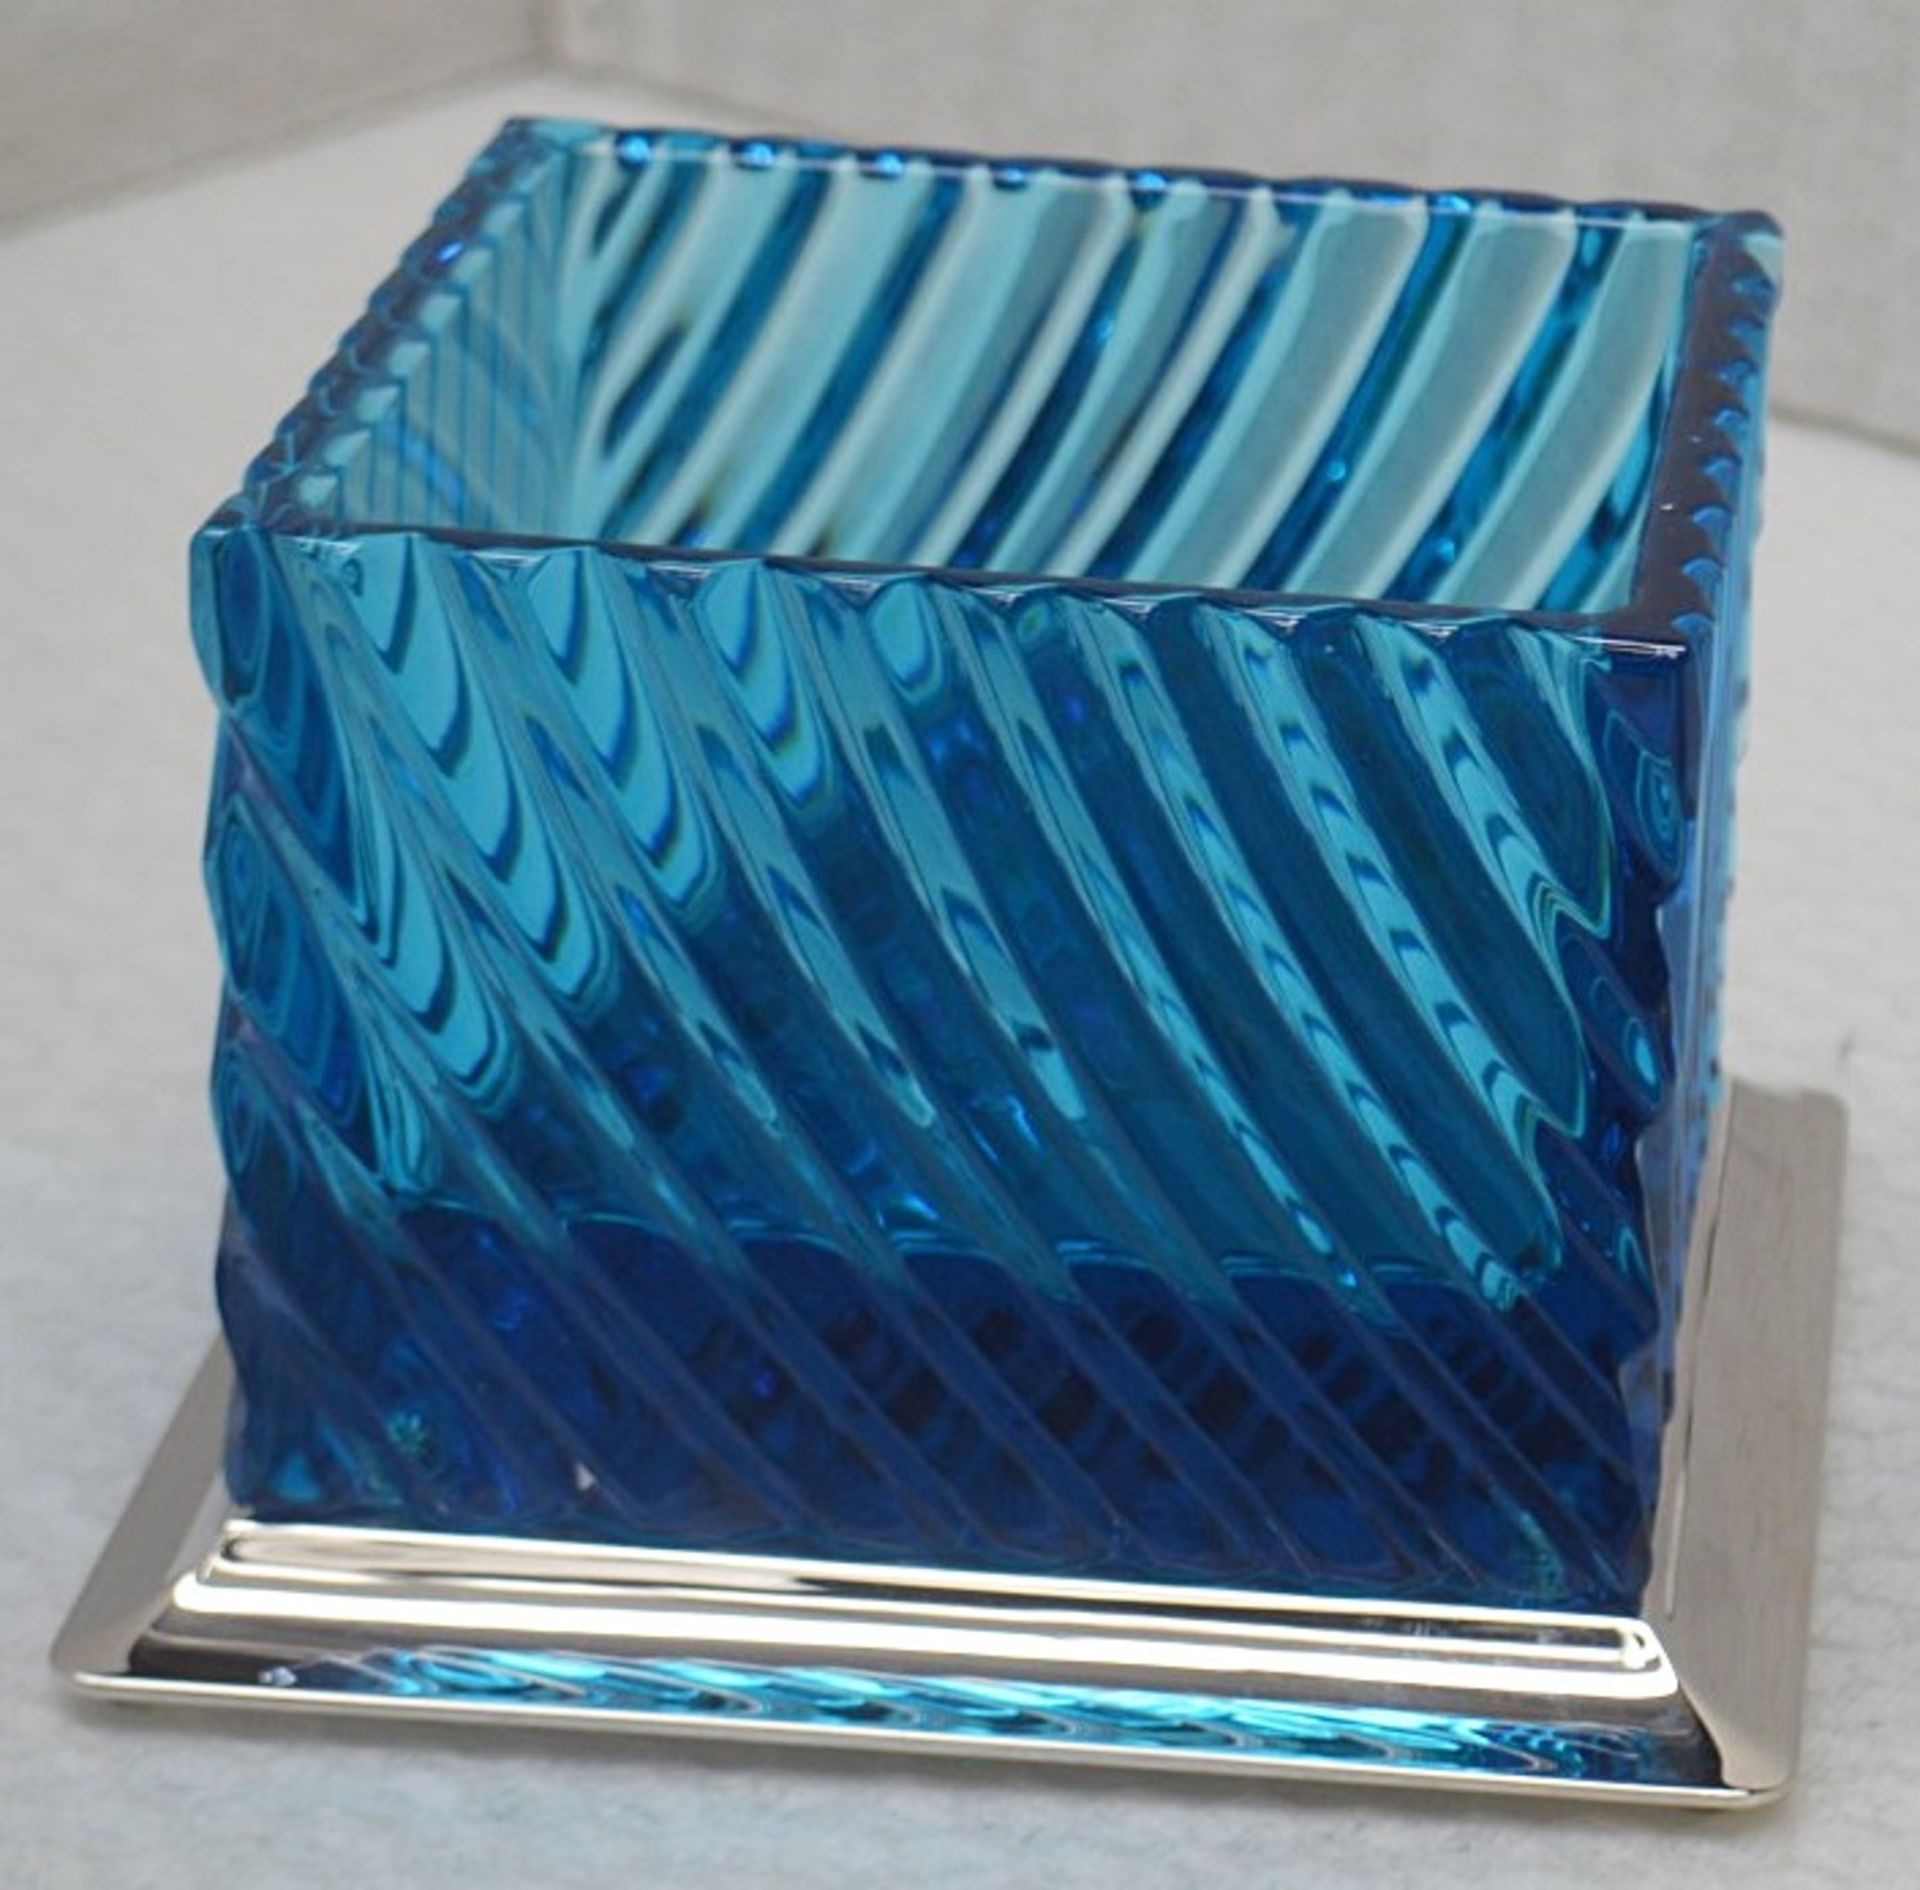 1 x BALDI 'Home Jewels' Italian Hand-crafted Artisan Crystal Box In Blue & Yellow, With A - Image 3 of 5